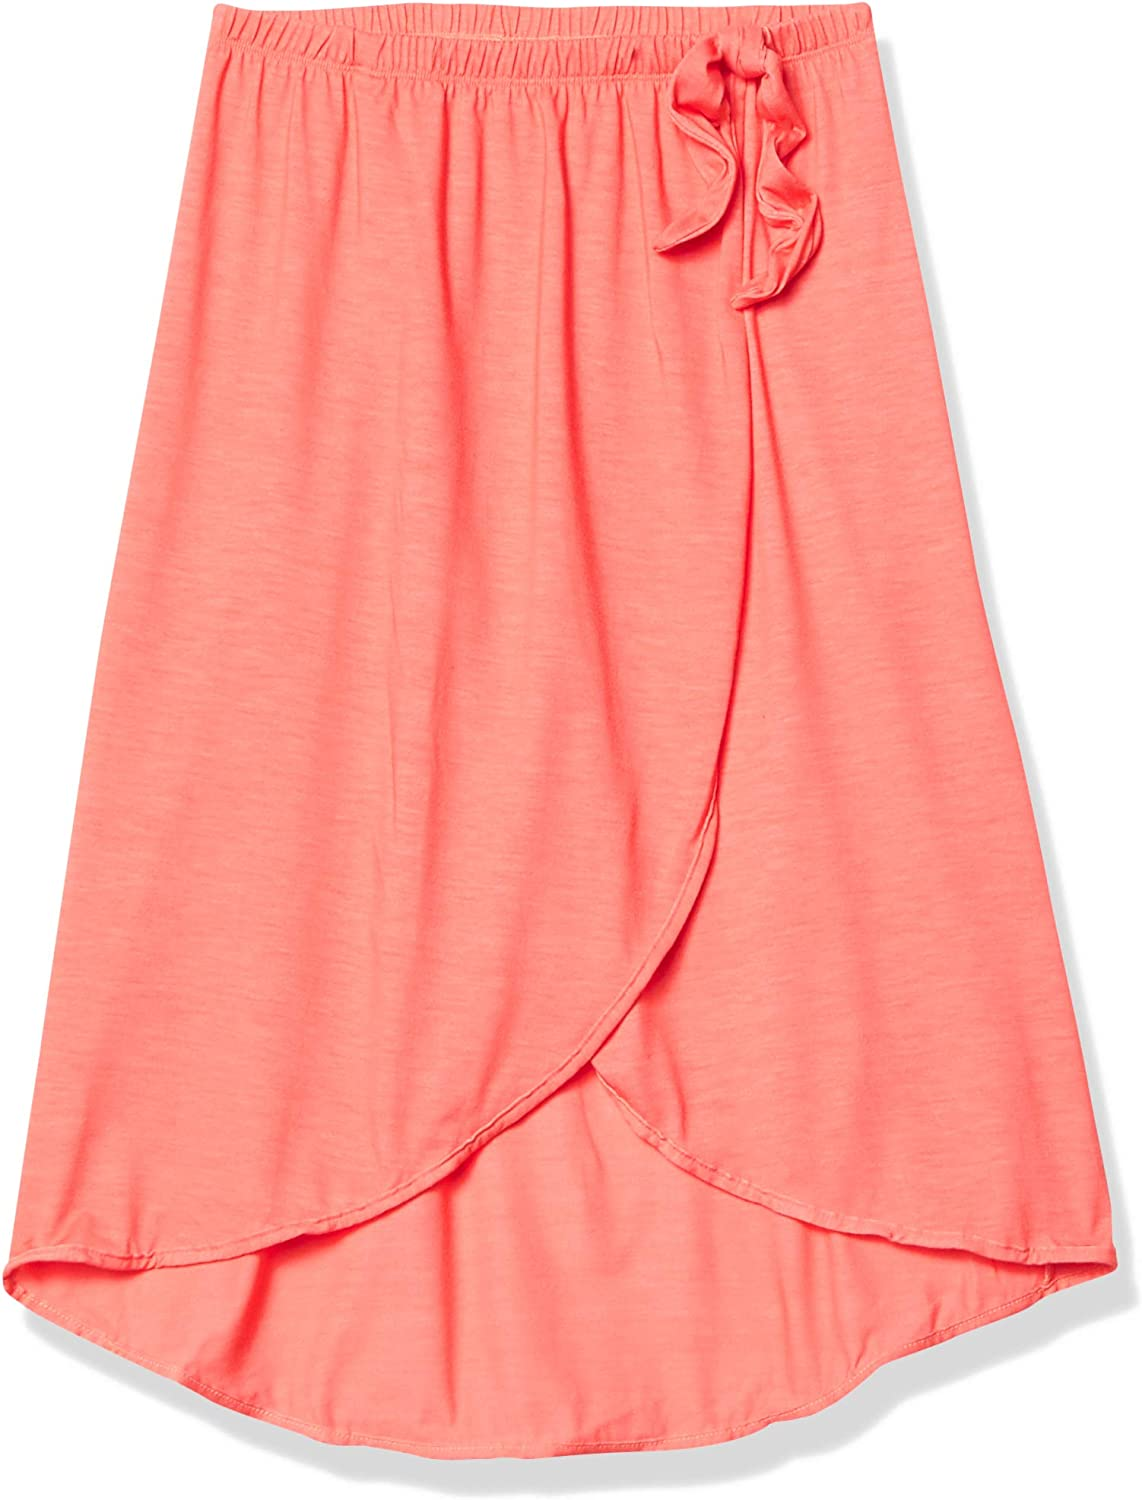 Heart And Harmony Girls Faux Wrap Sarong Swimsuit Cover Up